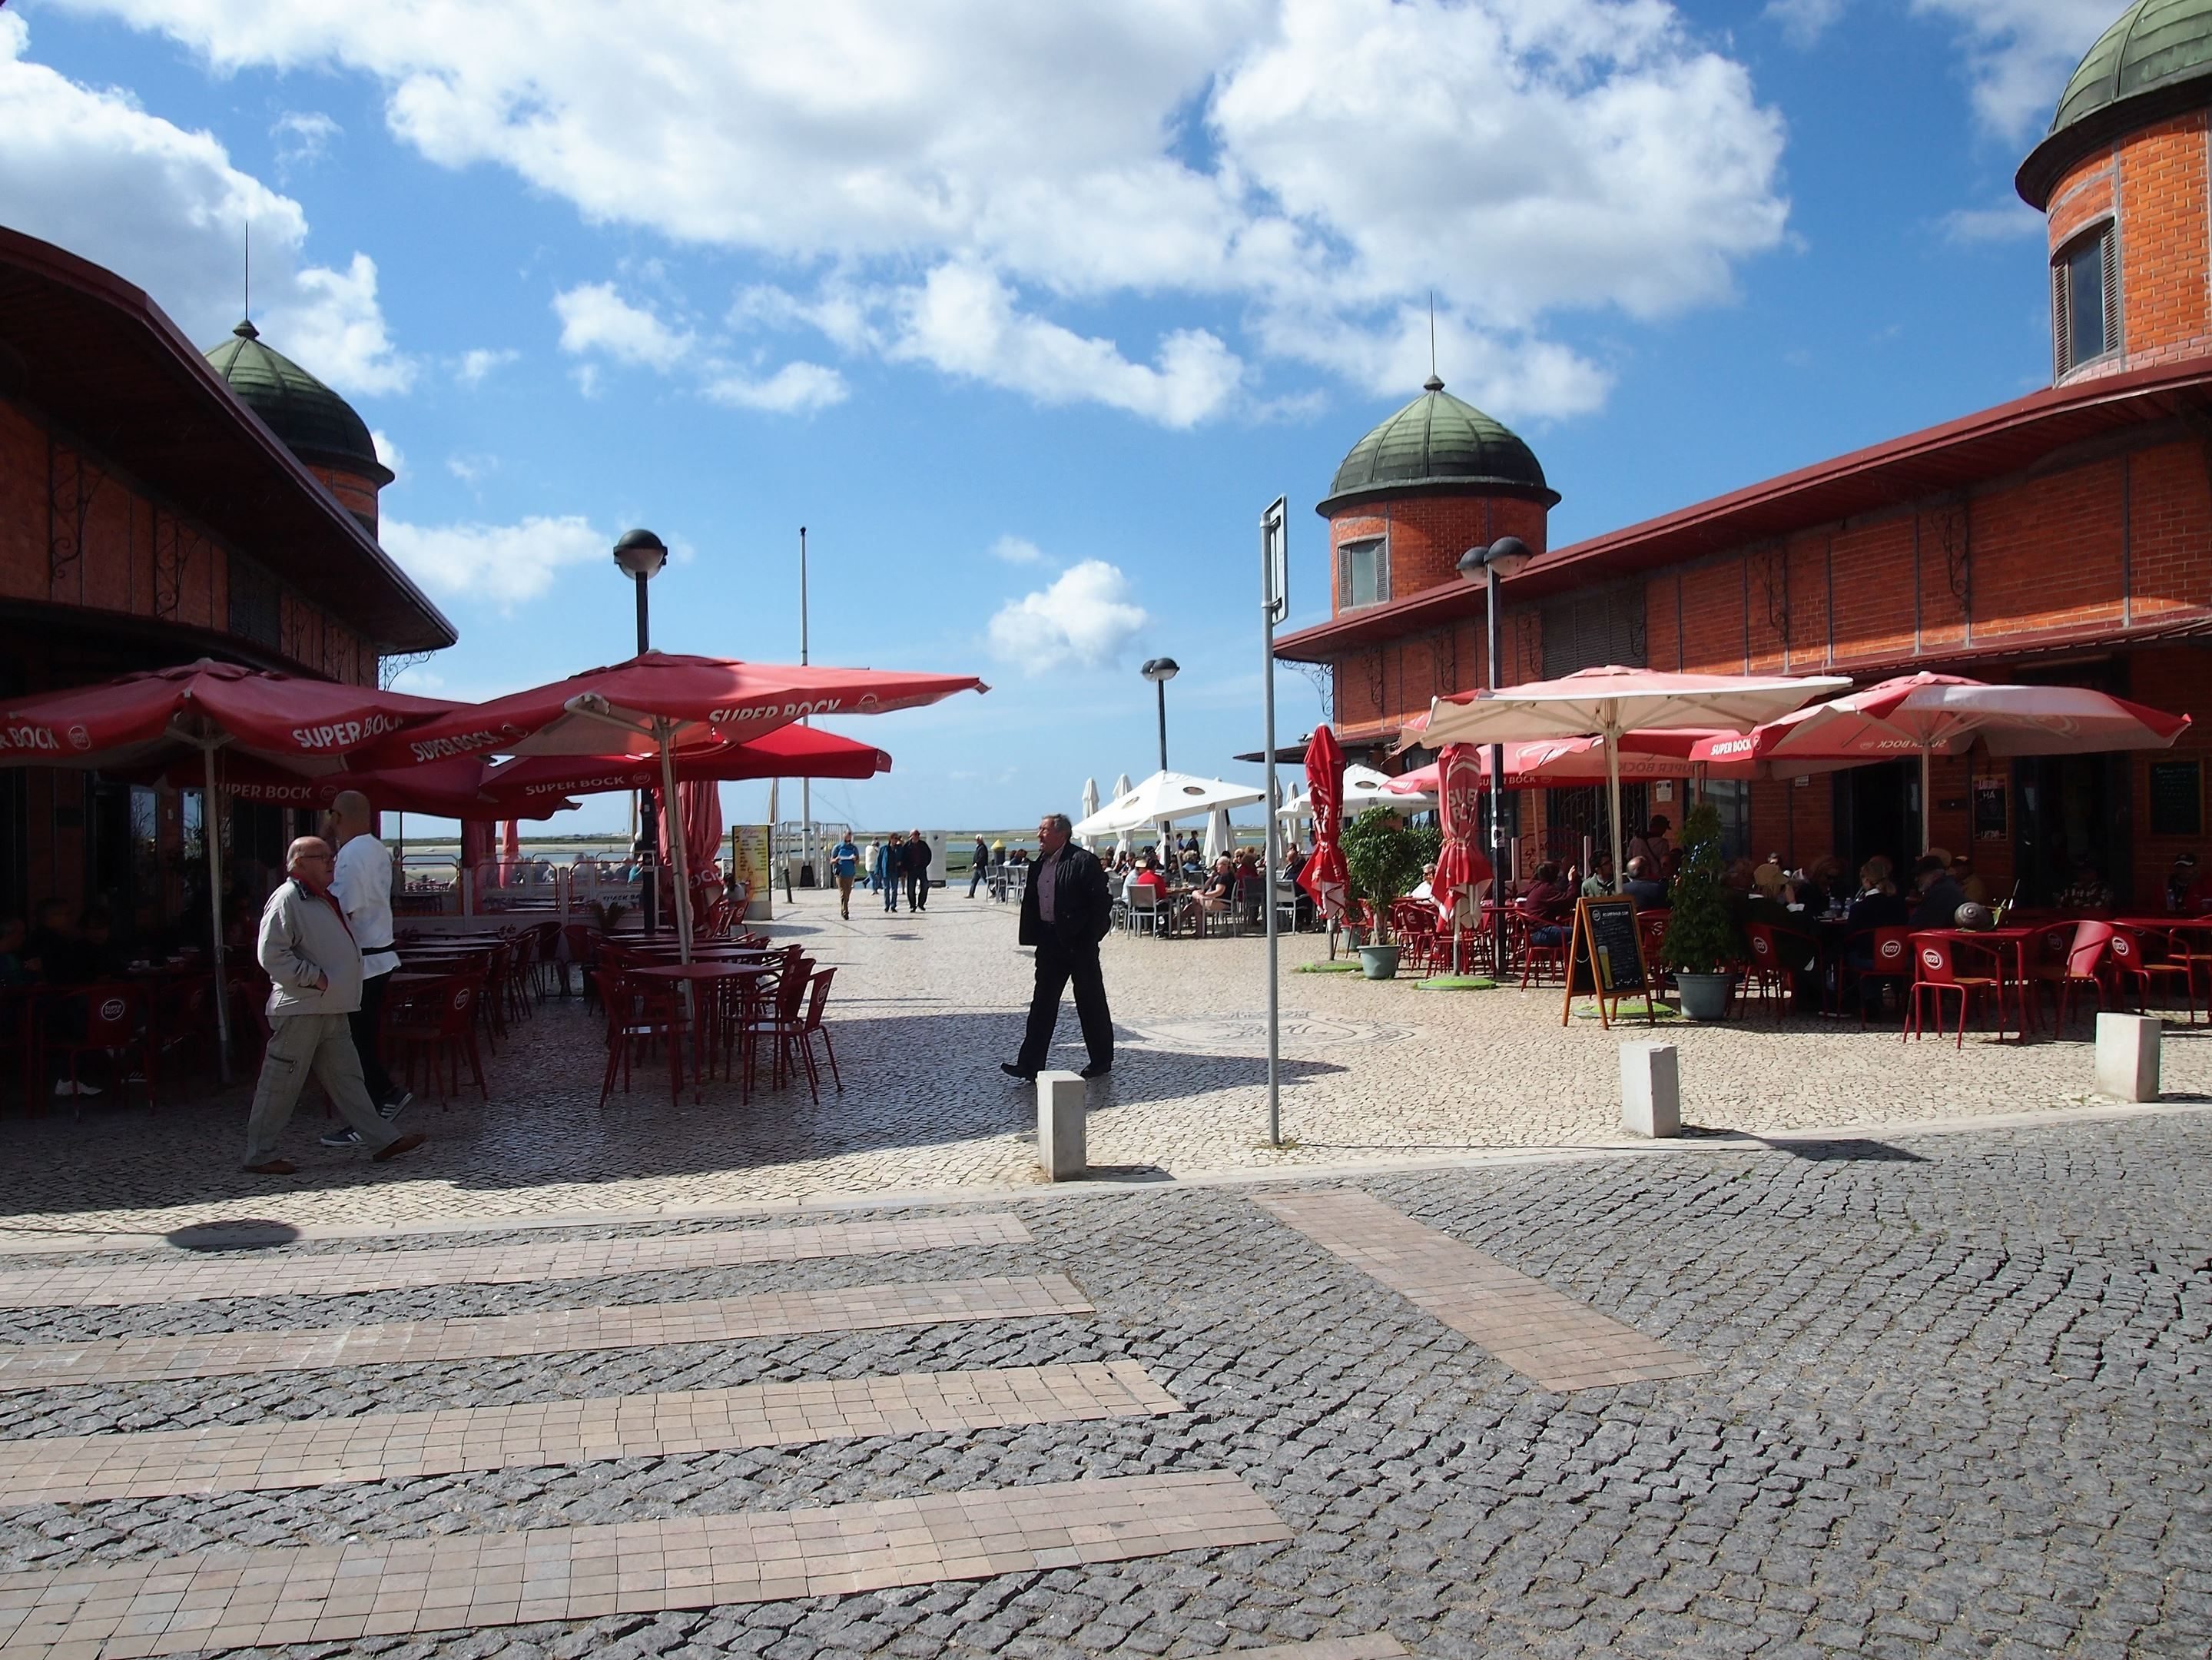 There are plenty of cafés to eat and drink at Olhão market, and admire the views of the Ria Formosa.